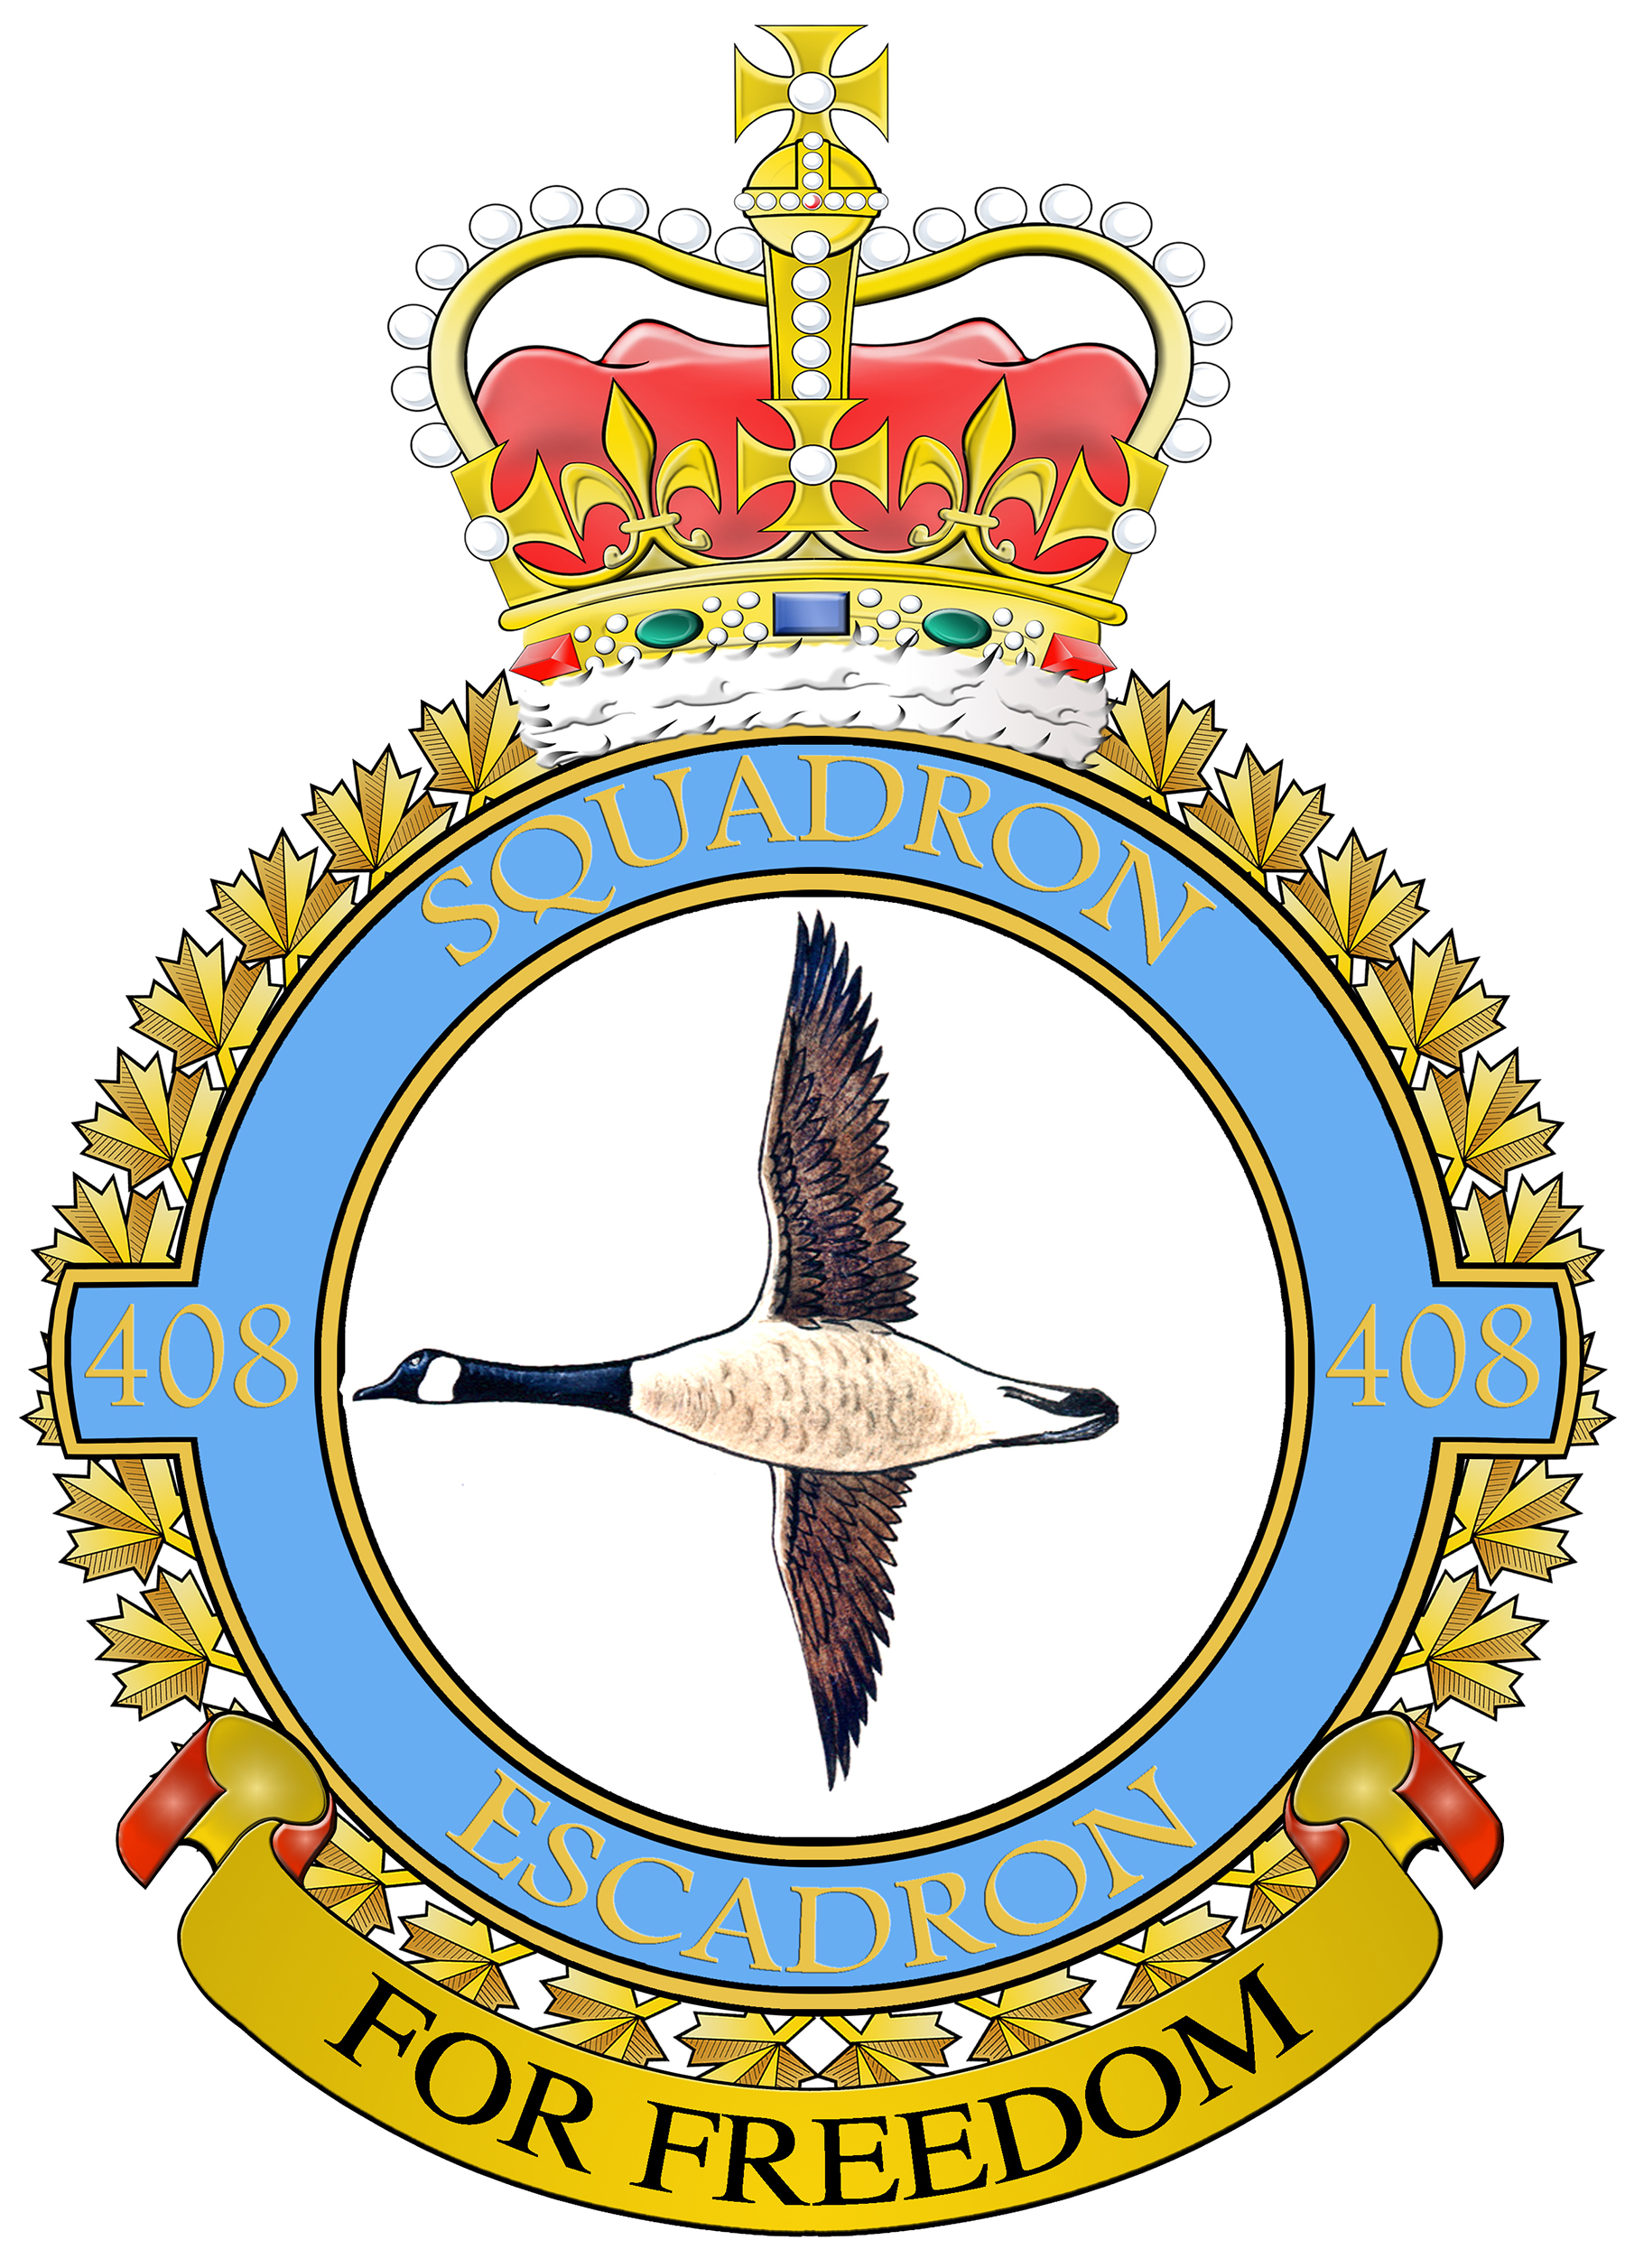 The current 408 Tactical Helicopter Squadron badge, IMAGE: DND